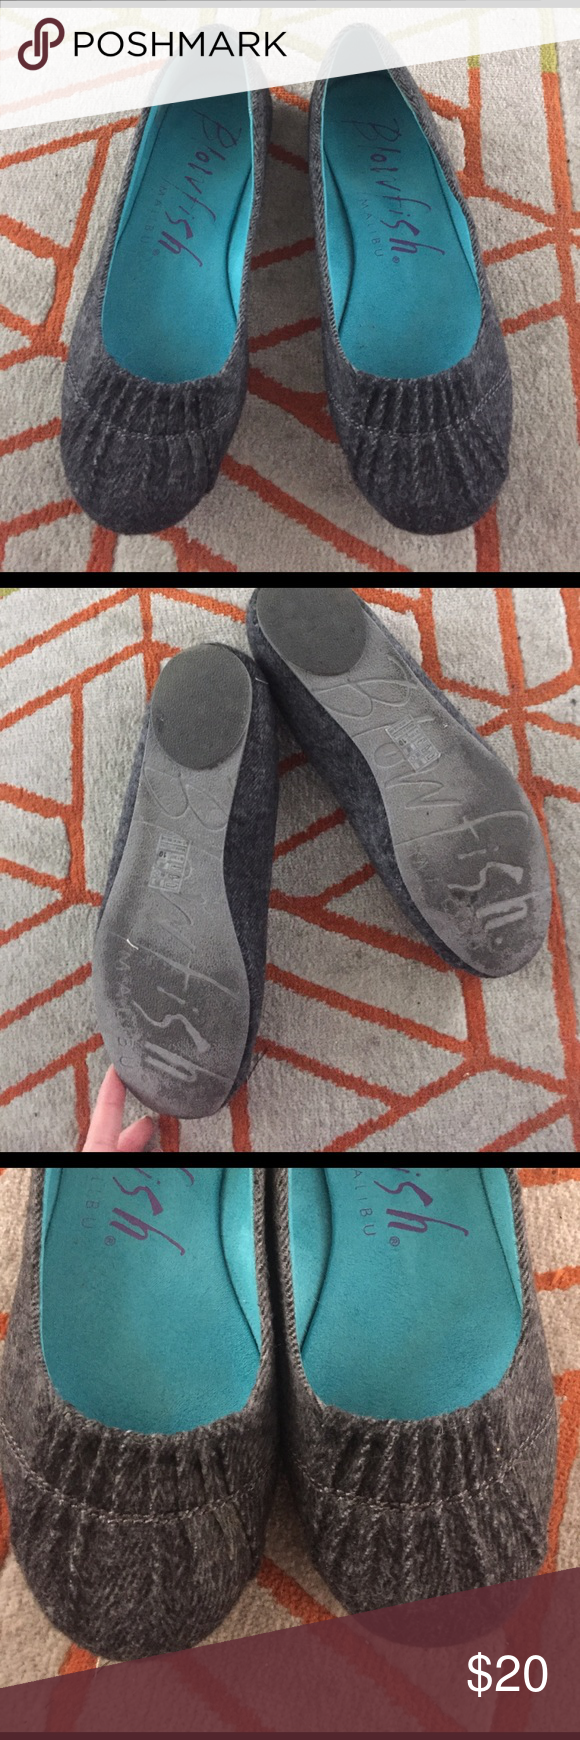 Cute gray blowfish flats! Super cute blowfish flats! Comfy, worn a few times. Smoke free home. I do own a cat but manage to keep him out of my closet. Make an offer! Blowfish Shoes Flats & Loafers